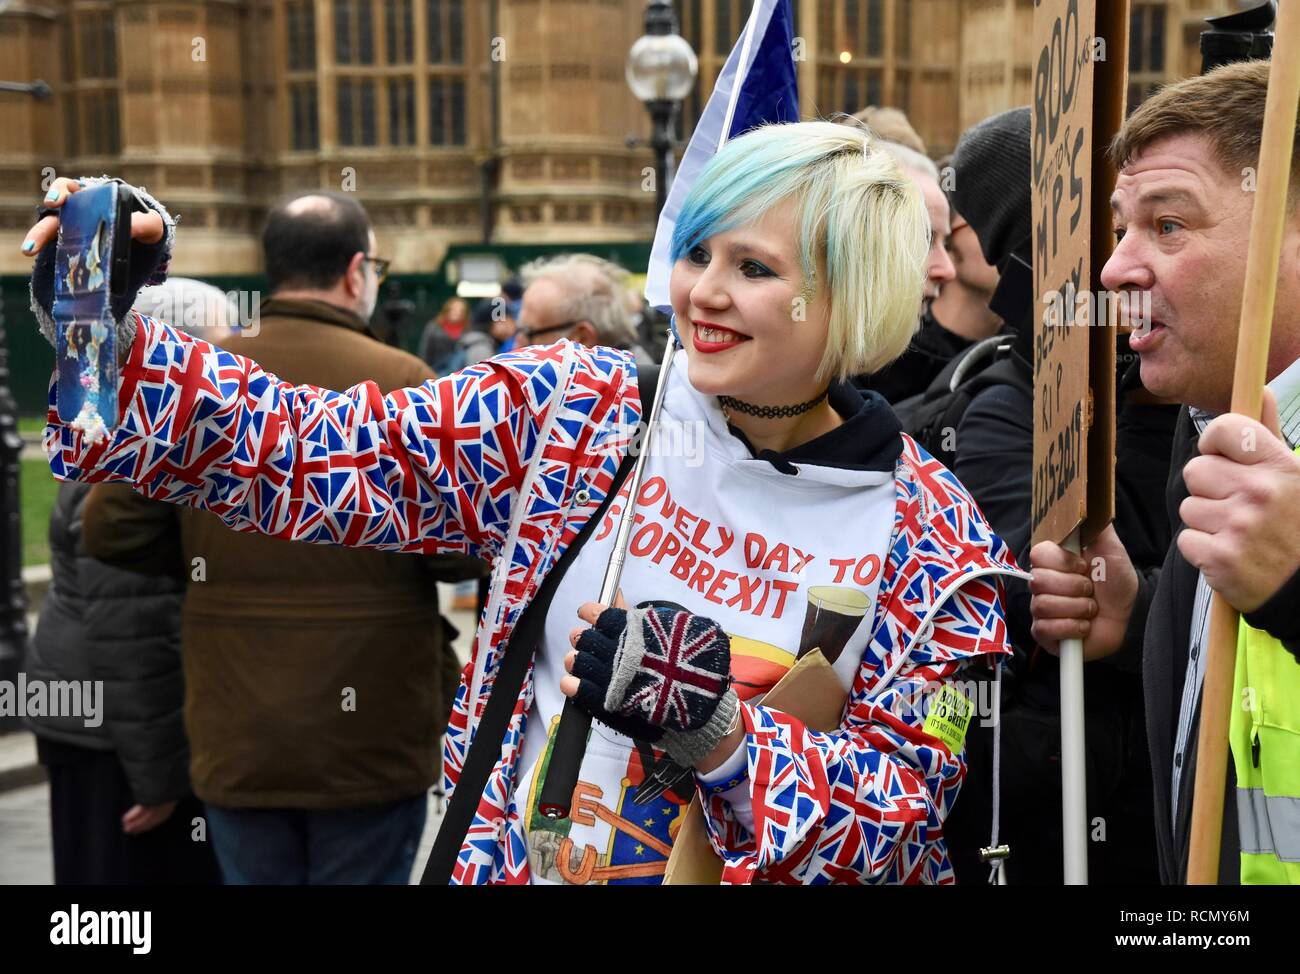 Madeleine Kay(Alba White Wolf) Pro EU Remainer with Brexiteer,Pro and Anti Brexit protesters gather outside Parliament on the day of Theresa May's meaningful vote. - Stock Image